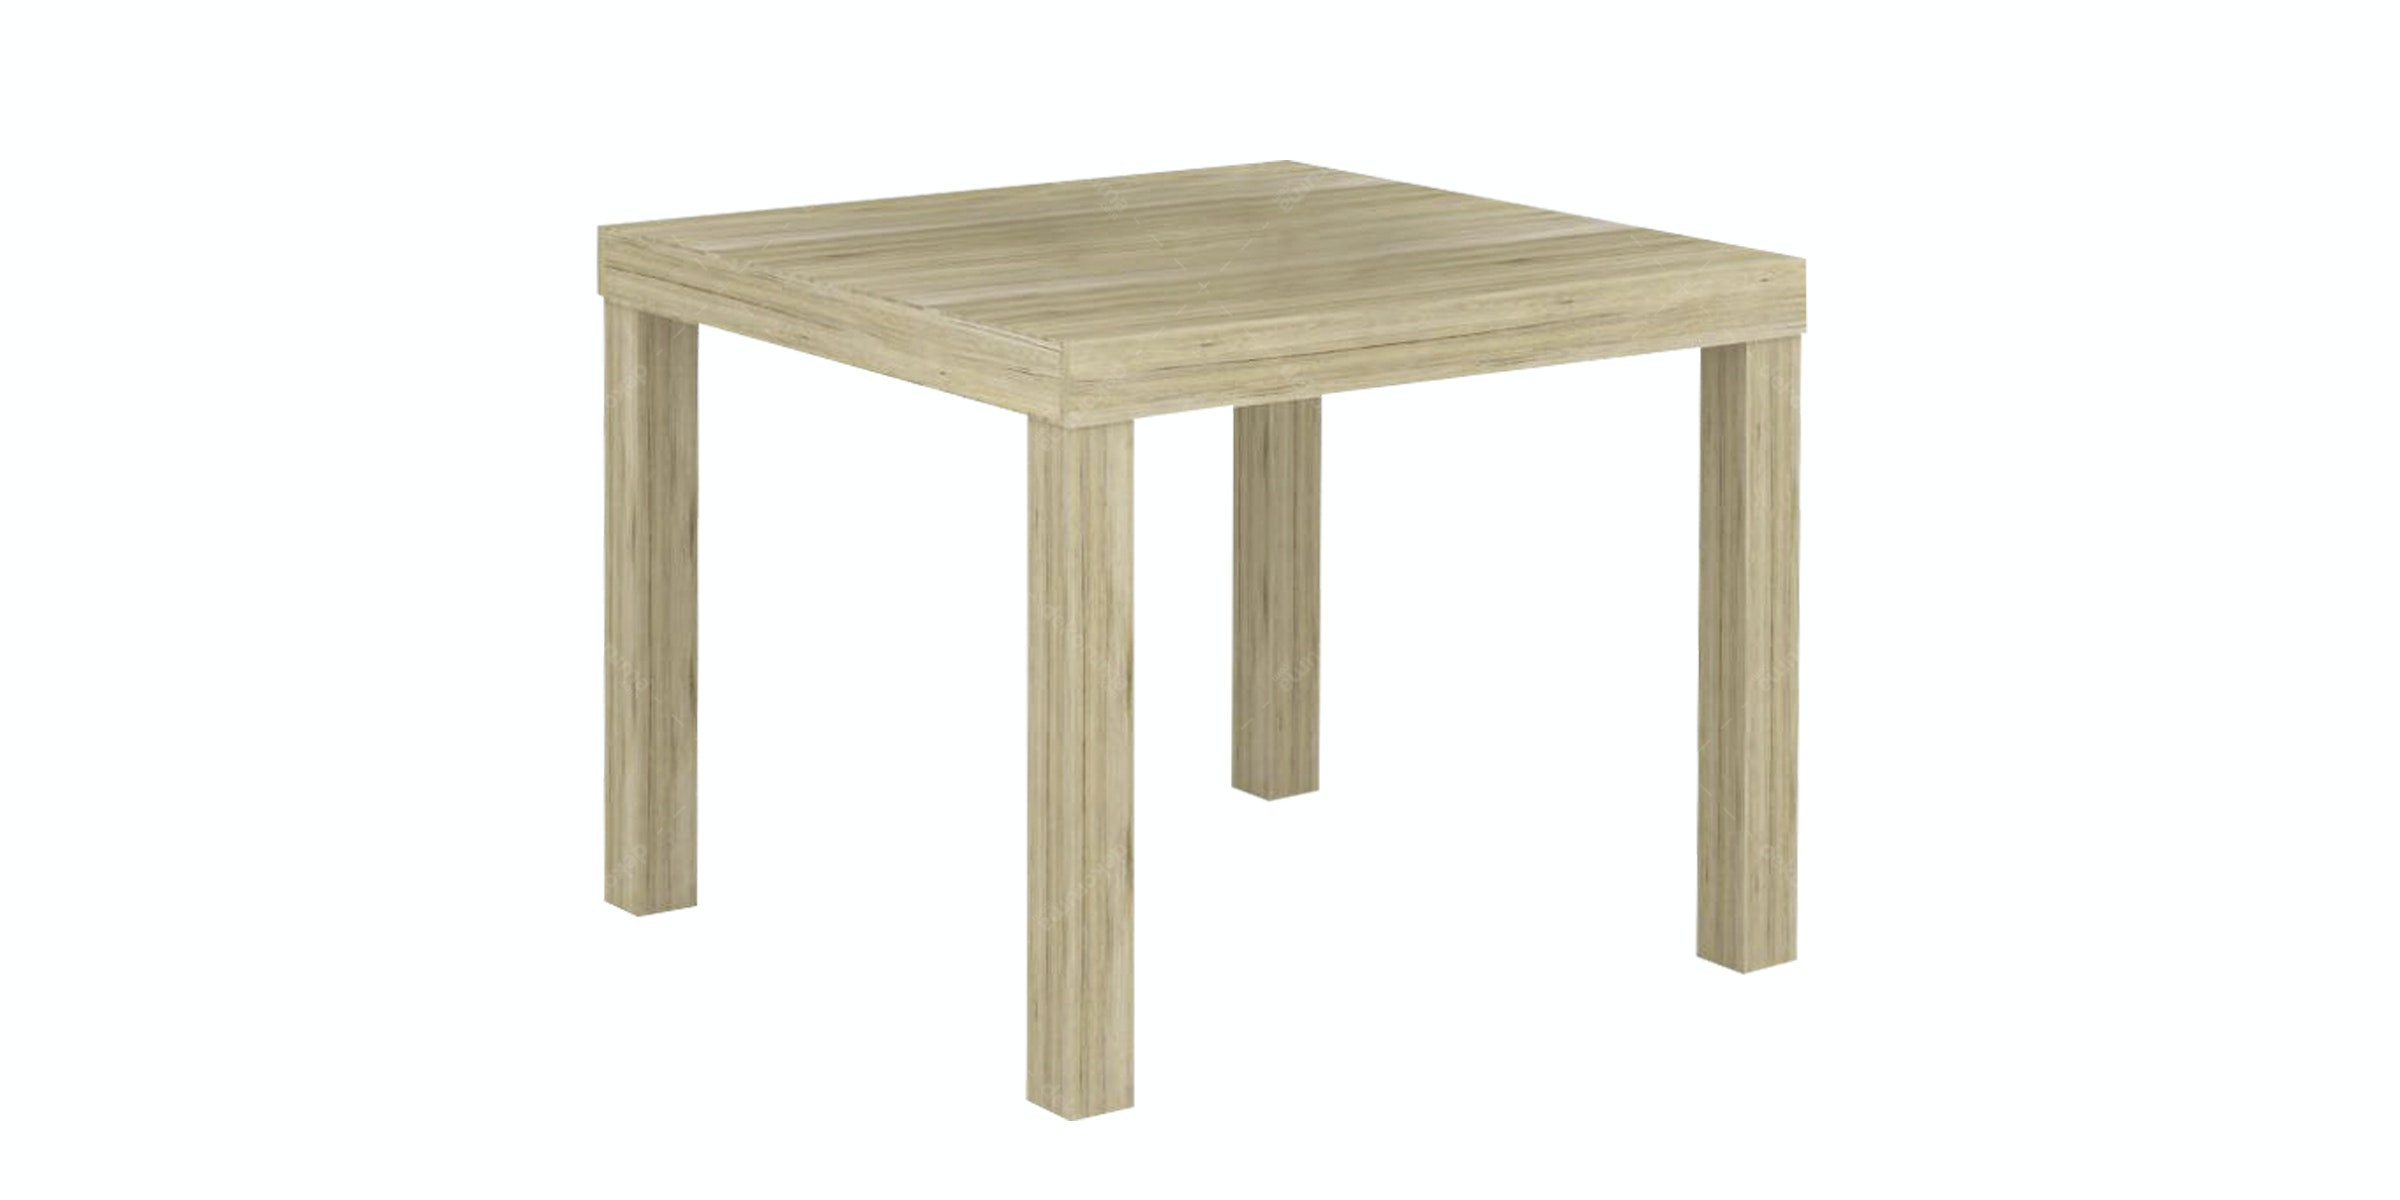 JYSK End Table Køge 50X50X41Cm Sanremo Oak